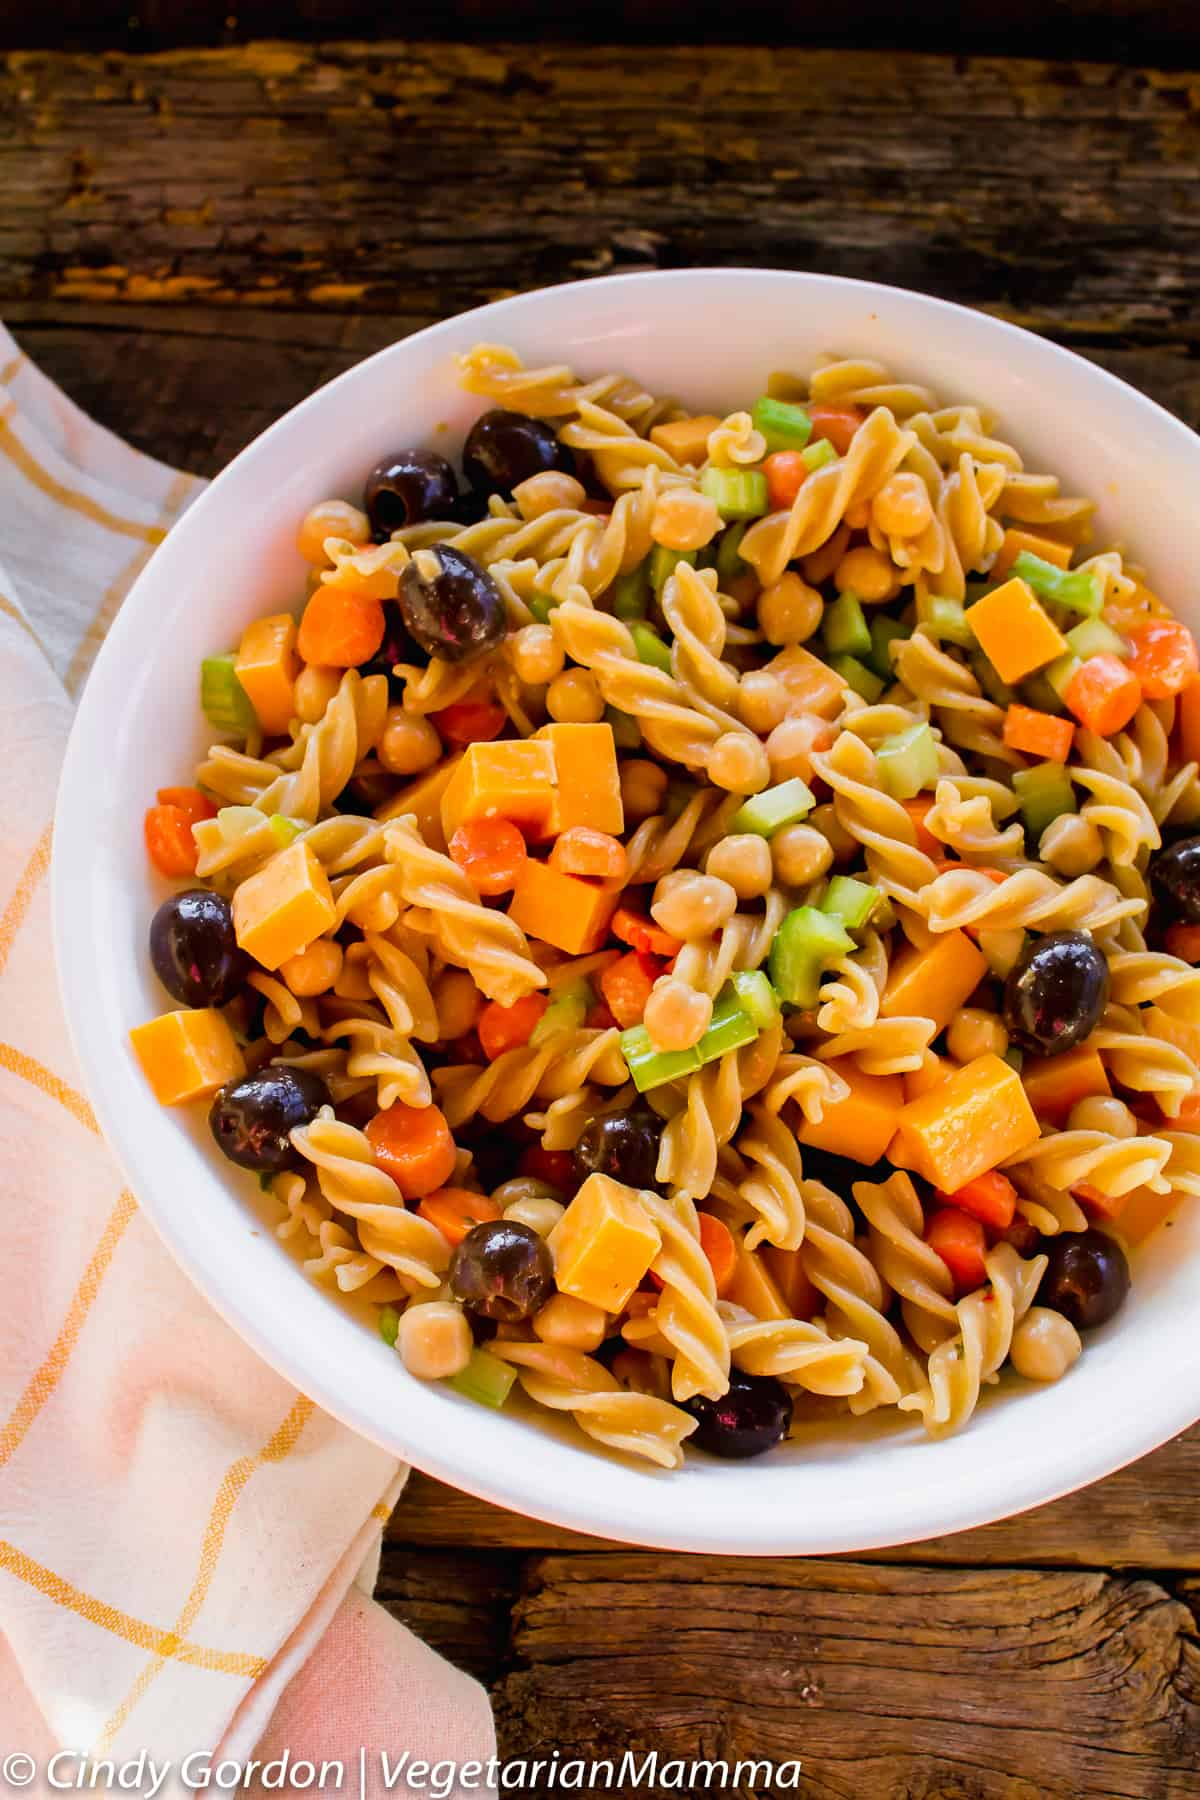 summer pasta salad, gluten free and served in a white bowl